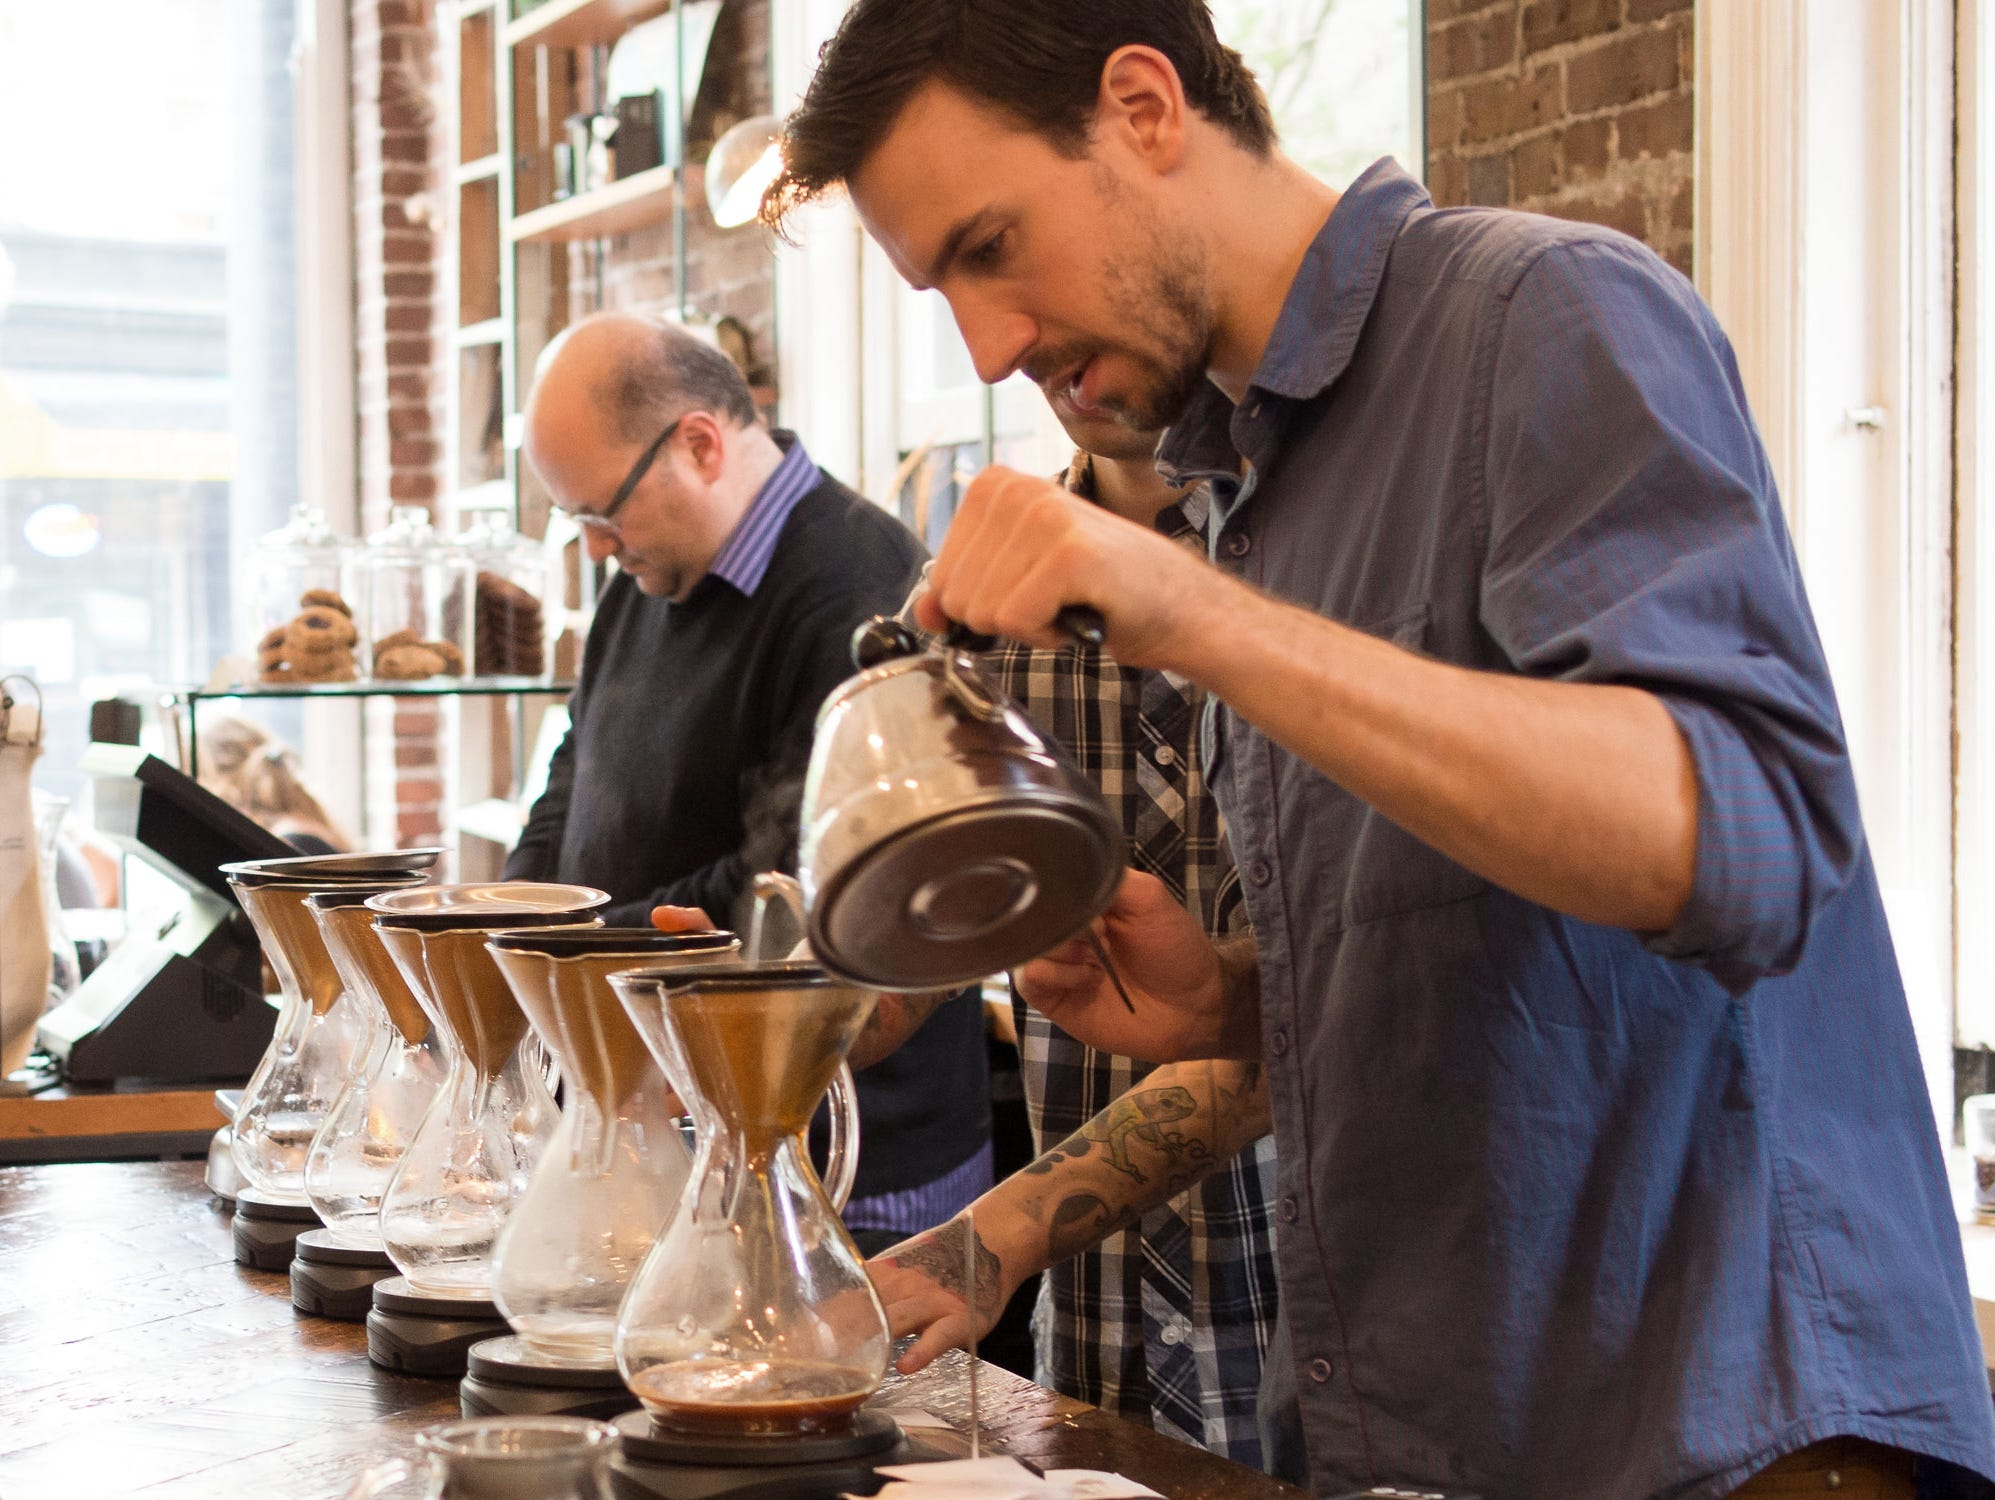 Working the pour over